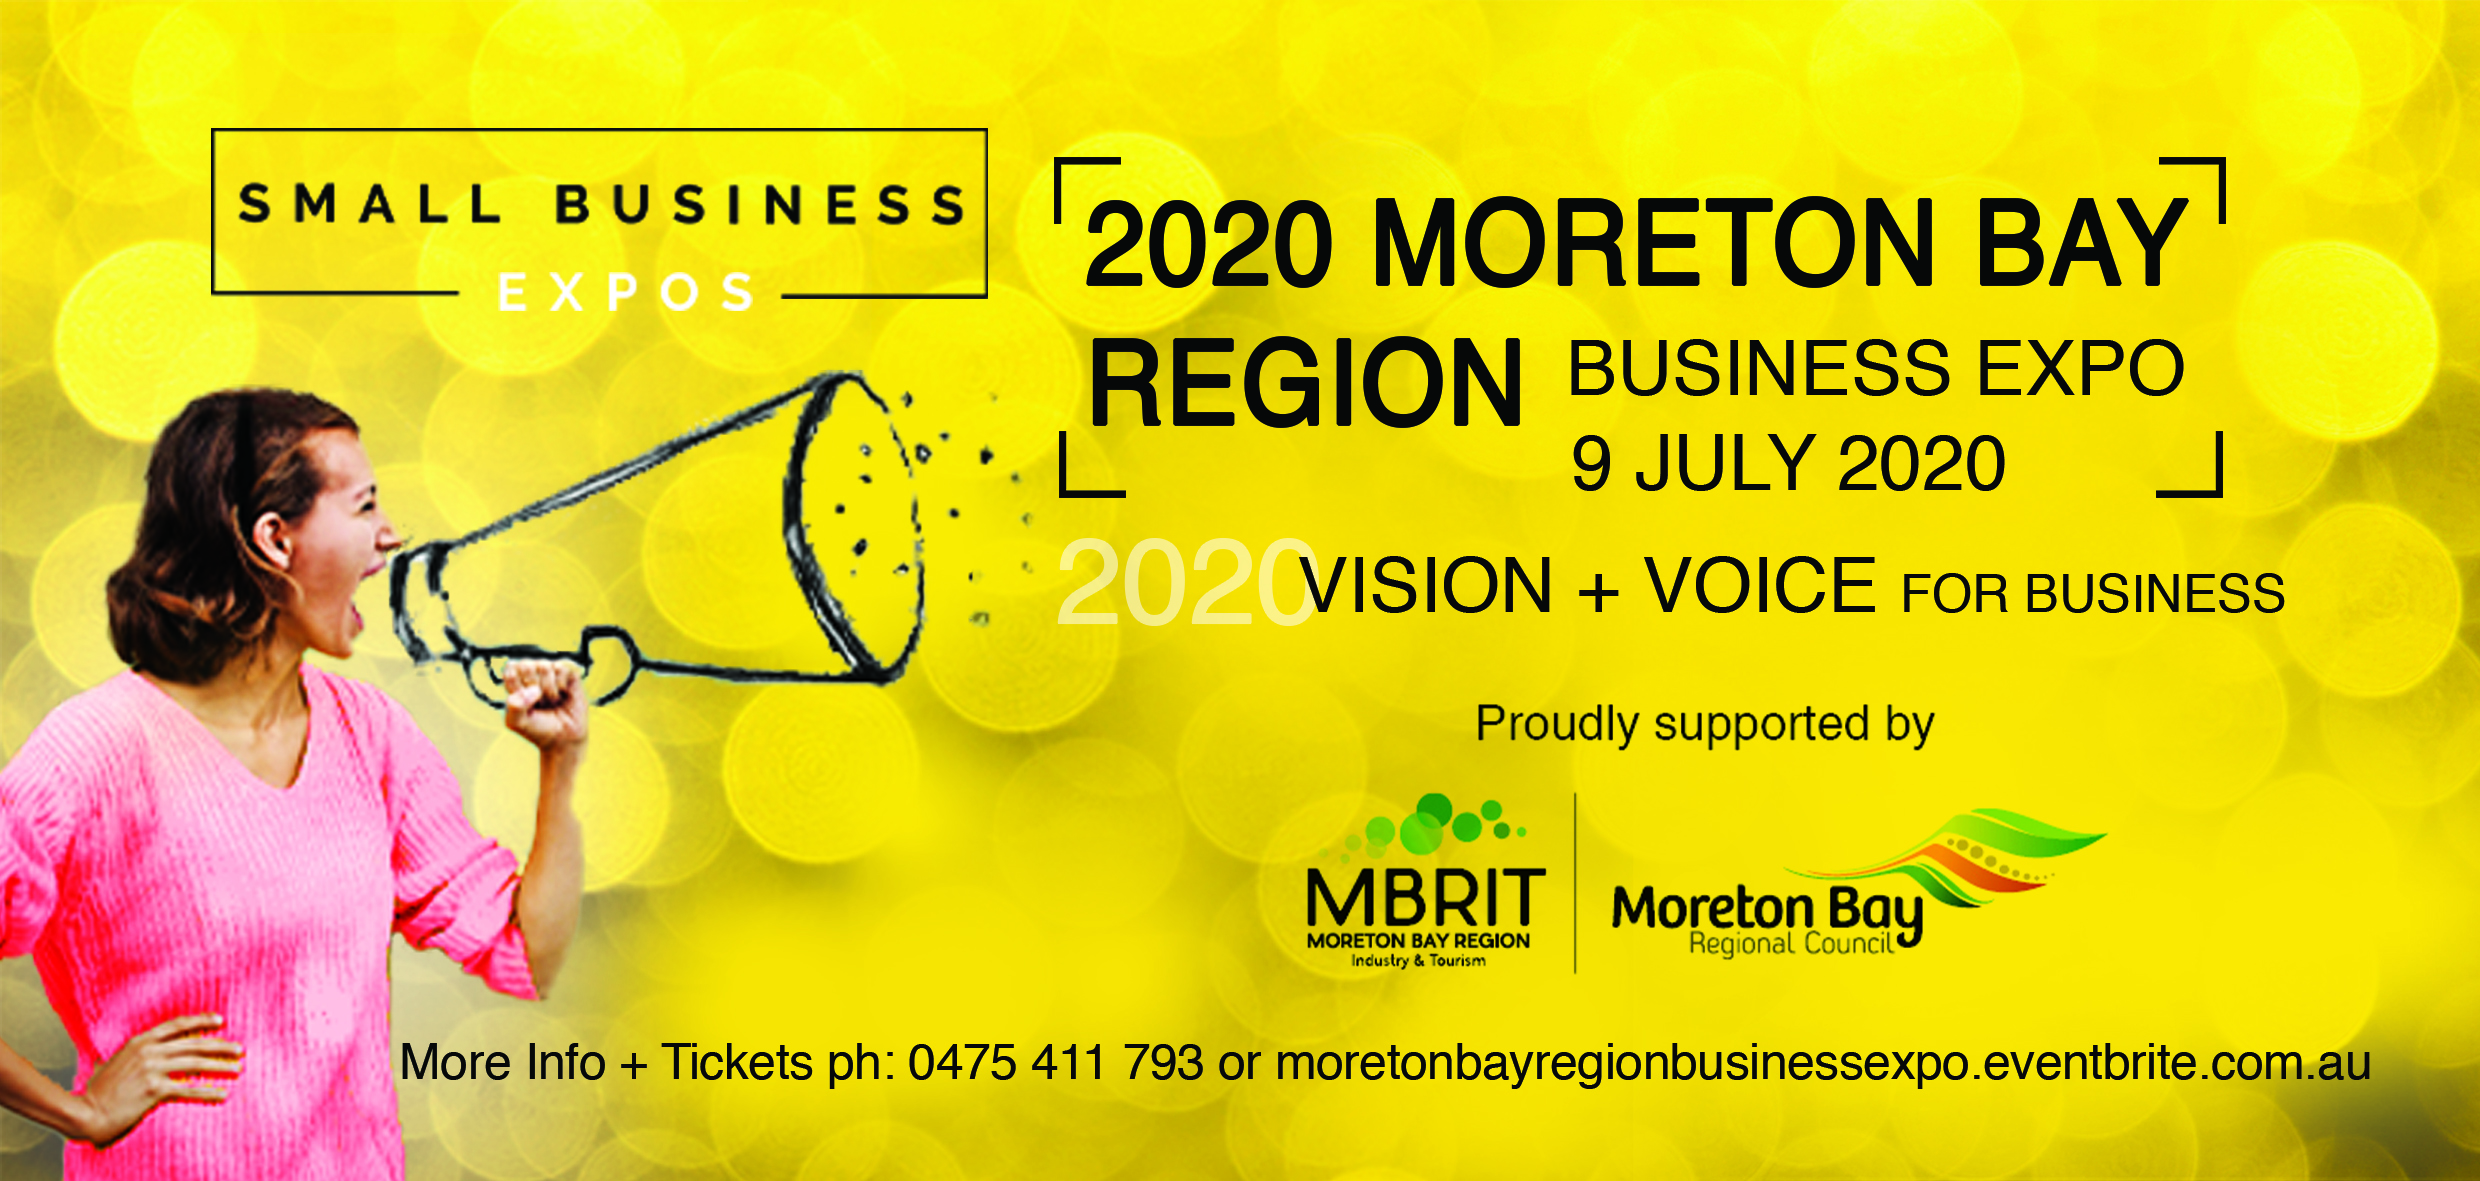 Business Expos | Brisbane | Gold Coast | Small Business Expos | Moreton Bay 2020 Dl Flyer